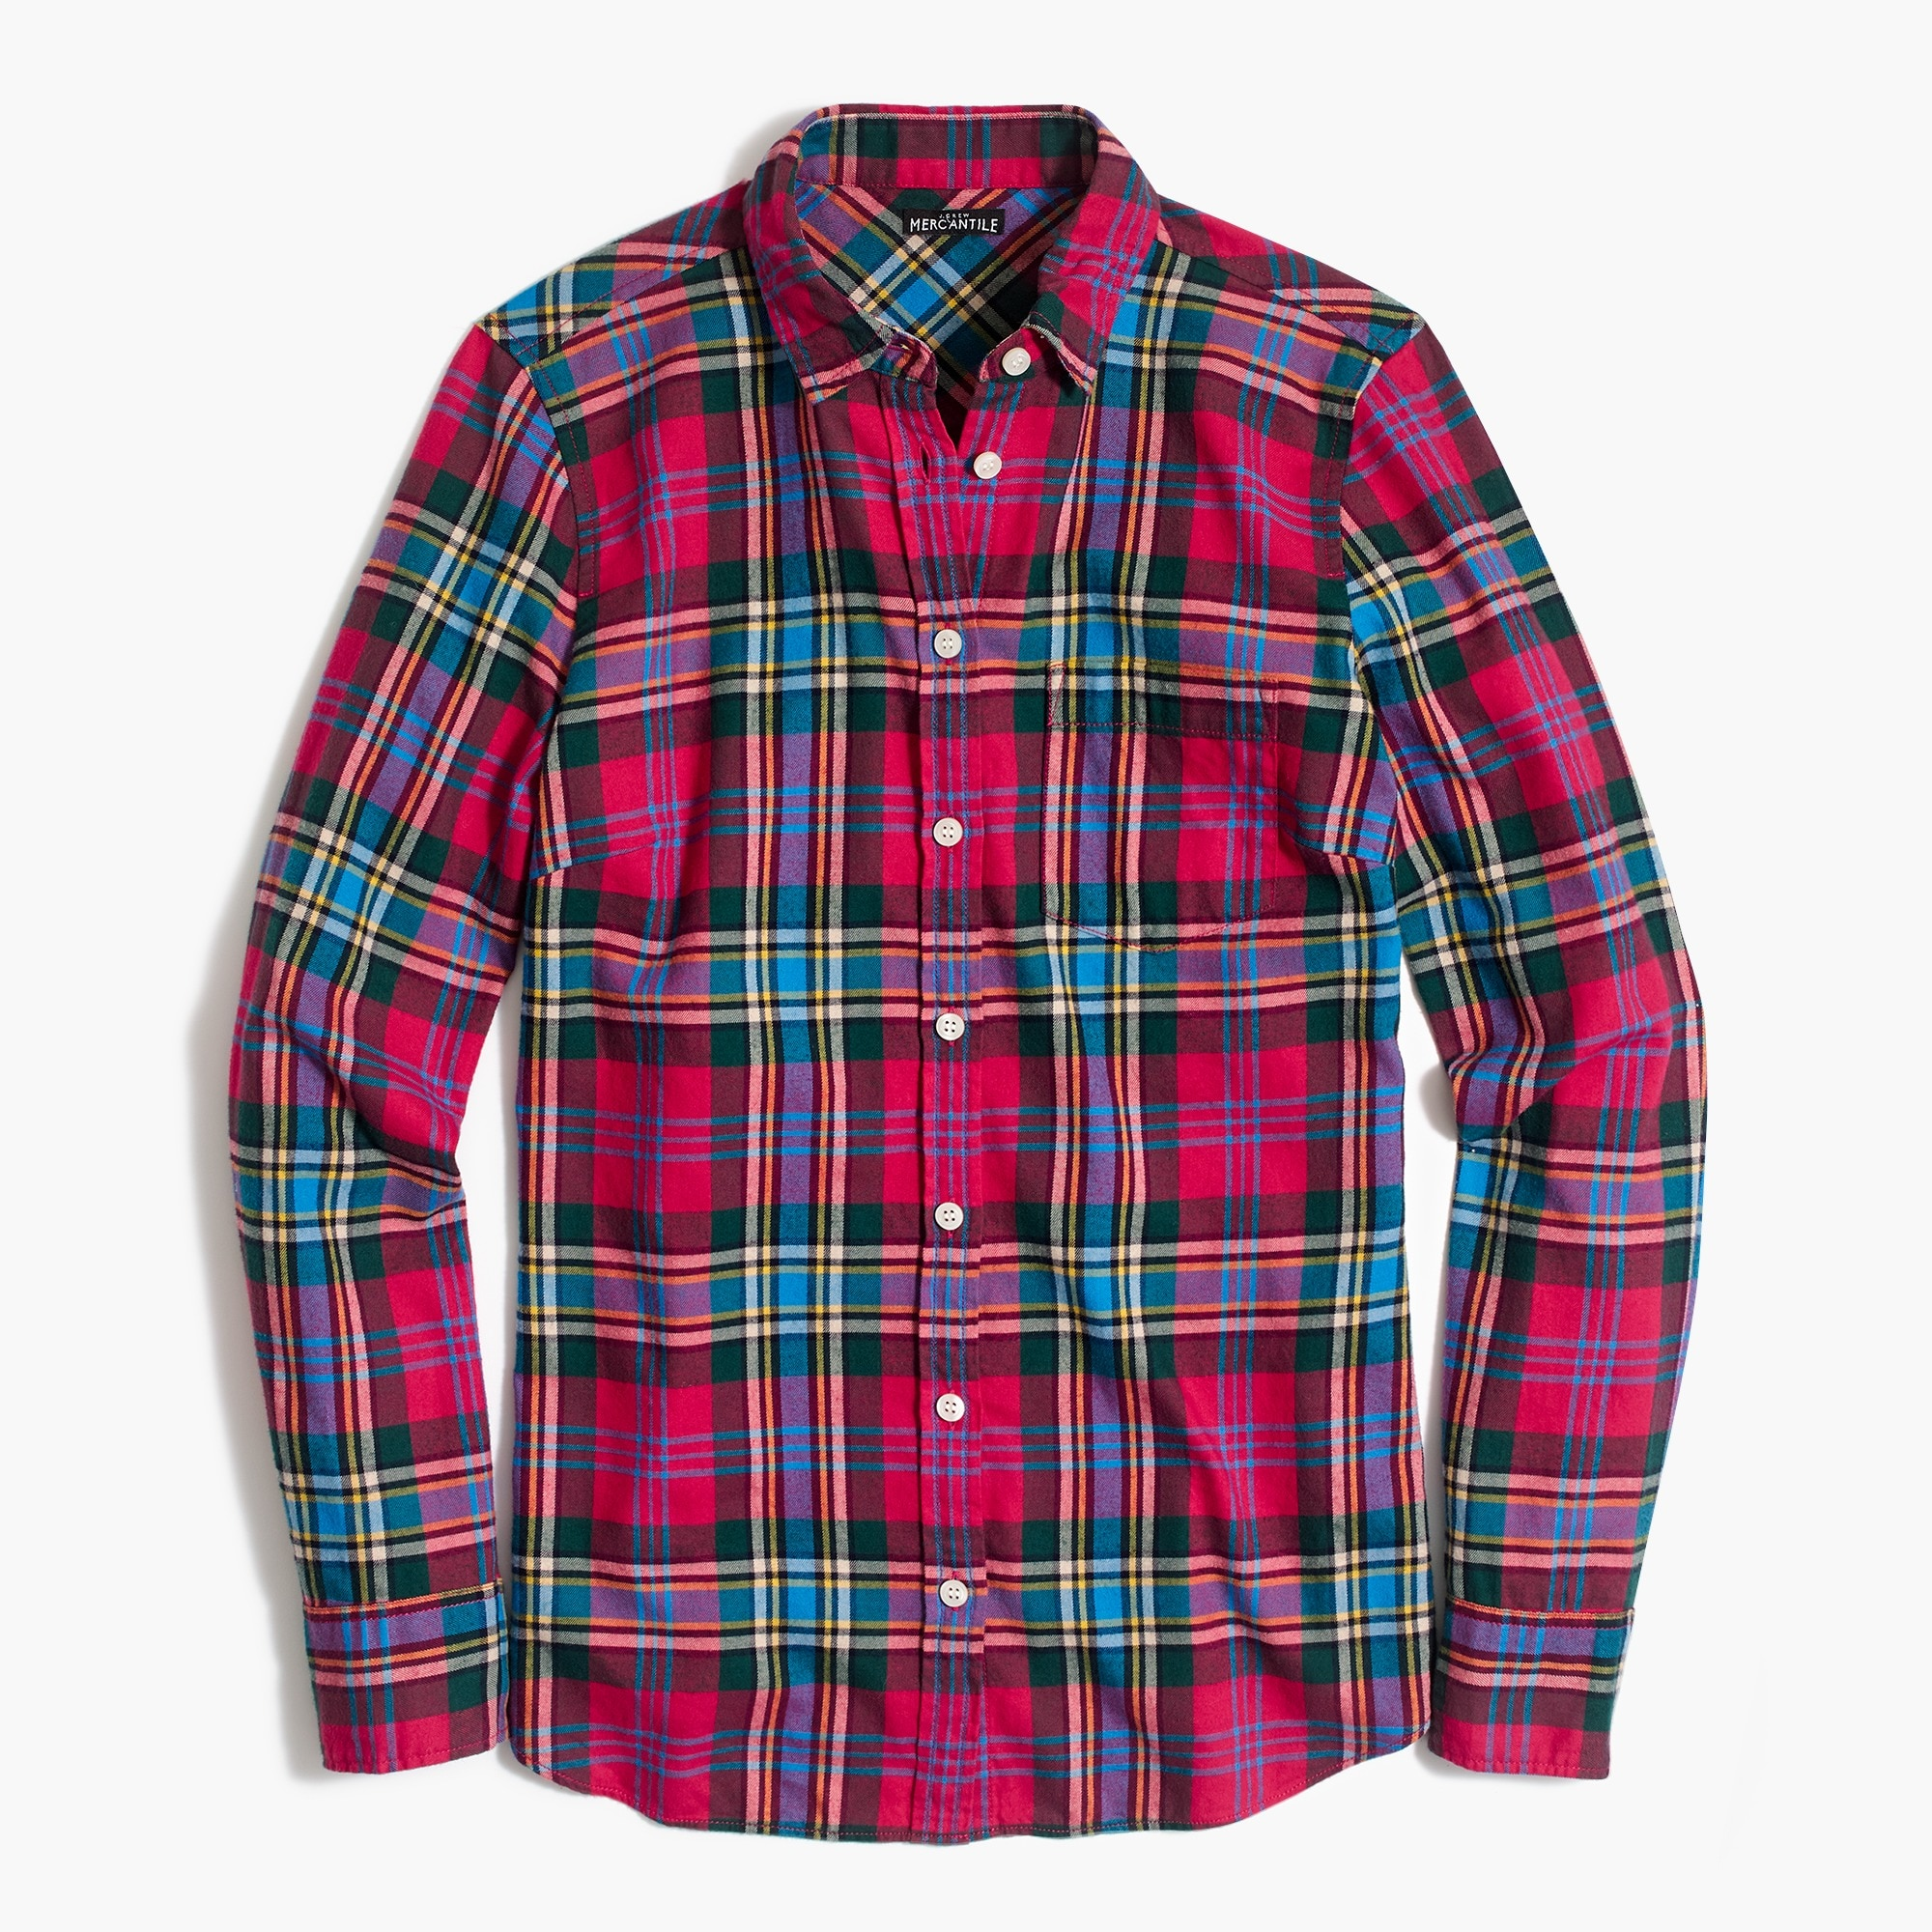 Image 2 for Petite flannel shirt